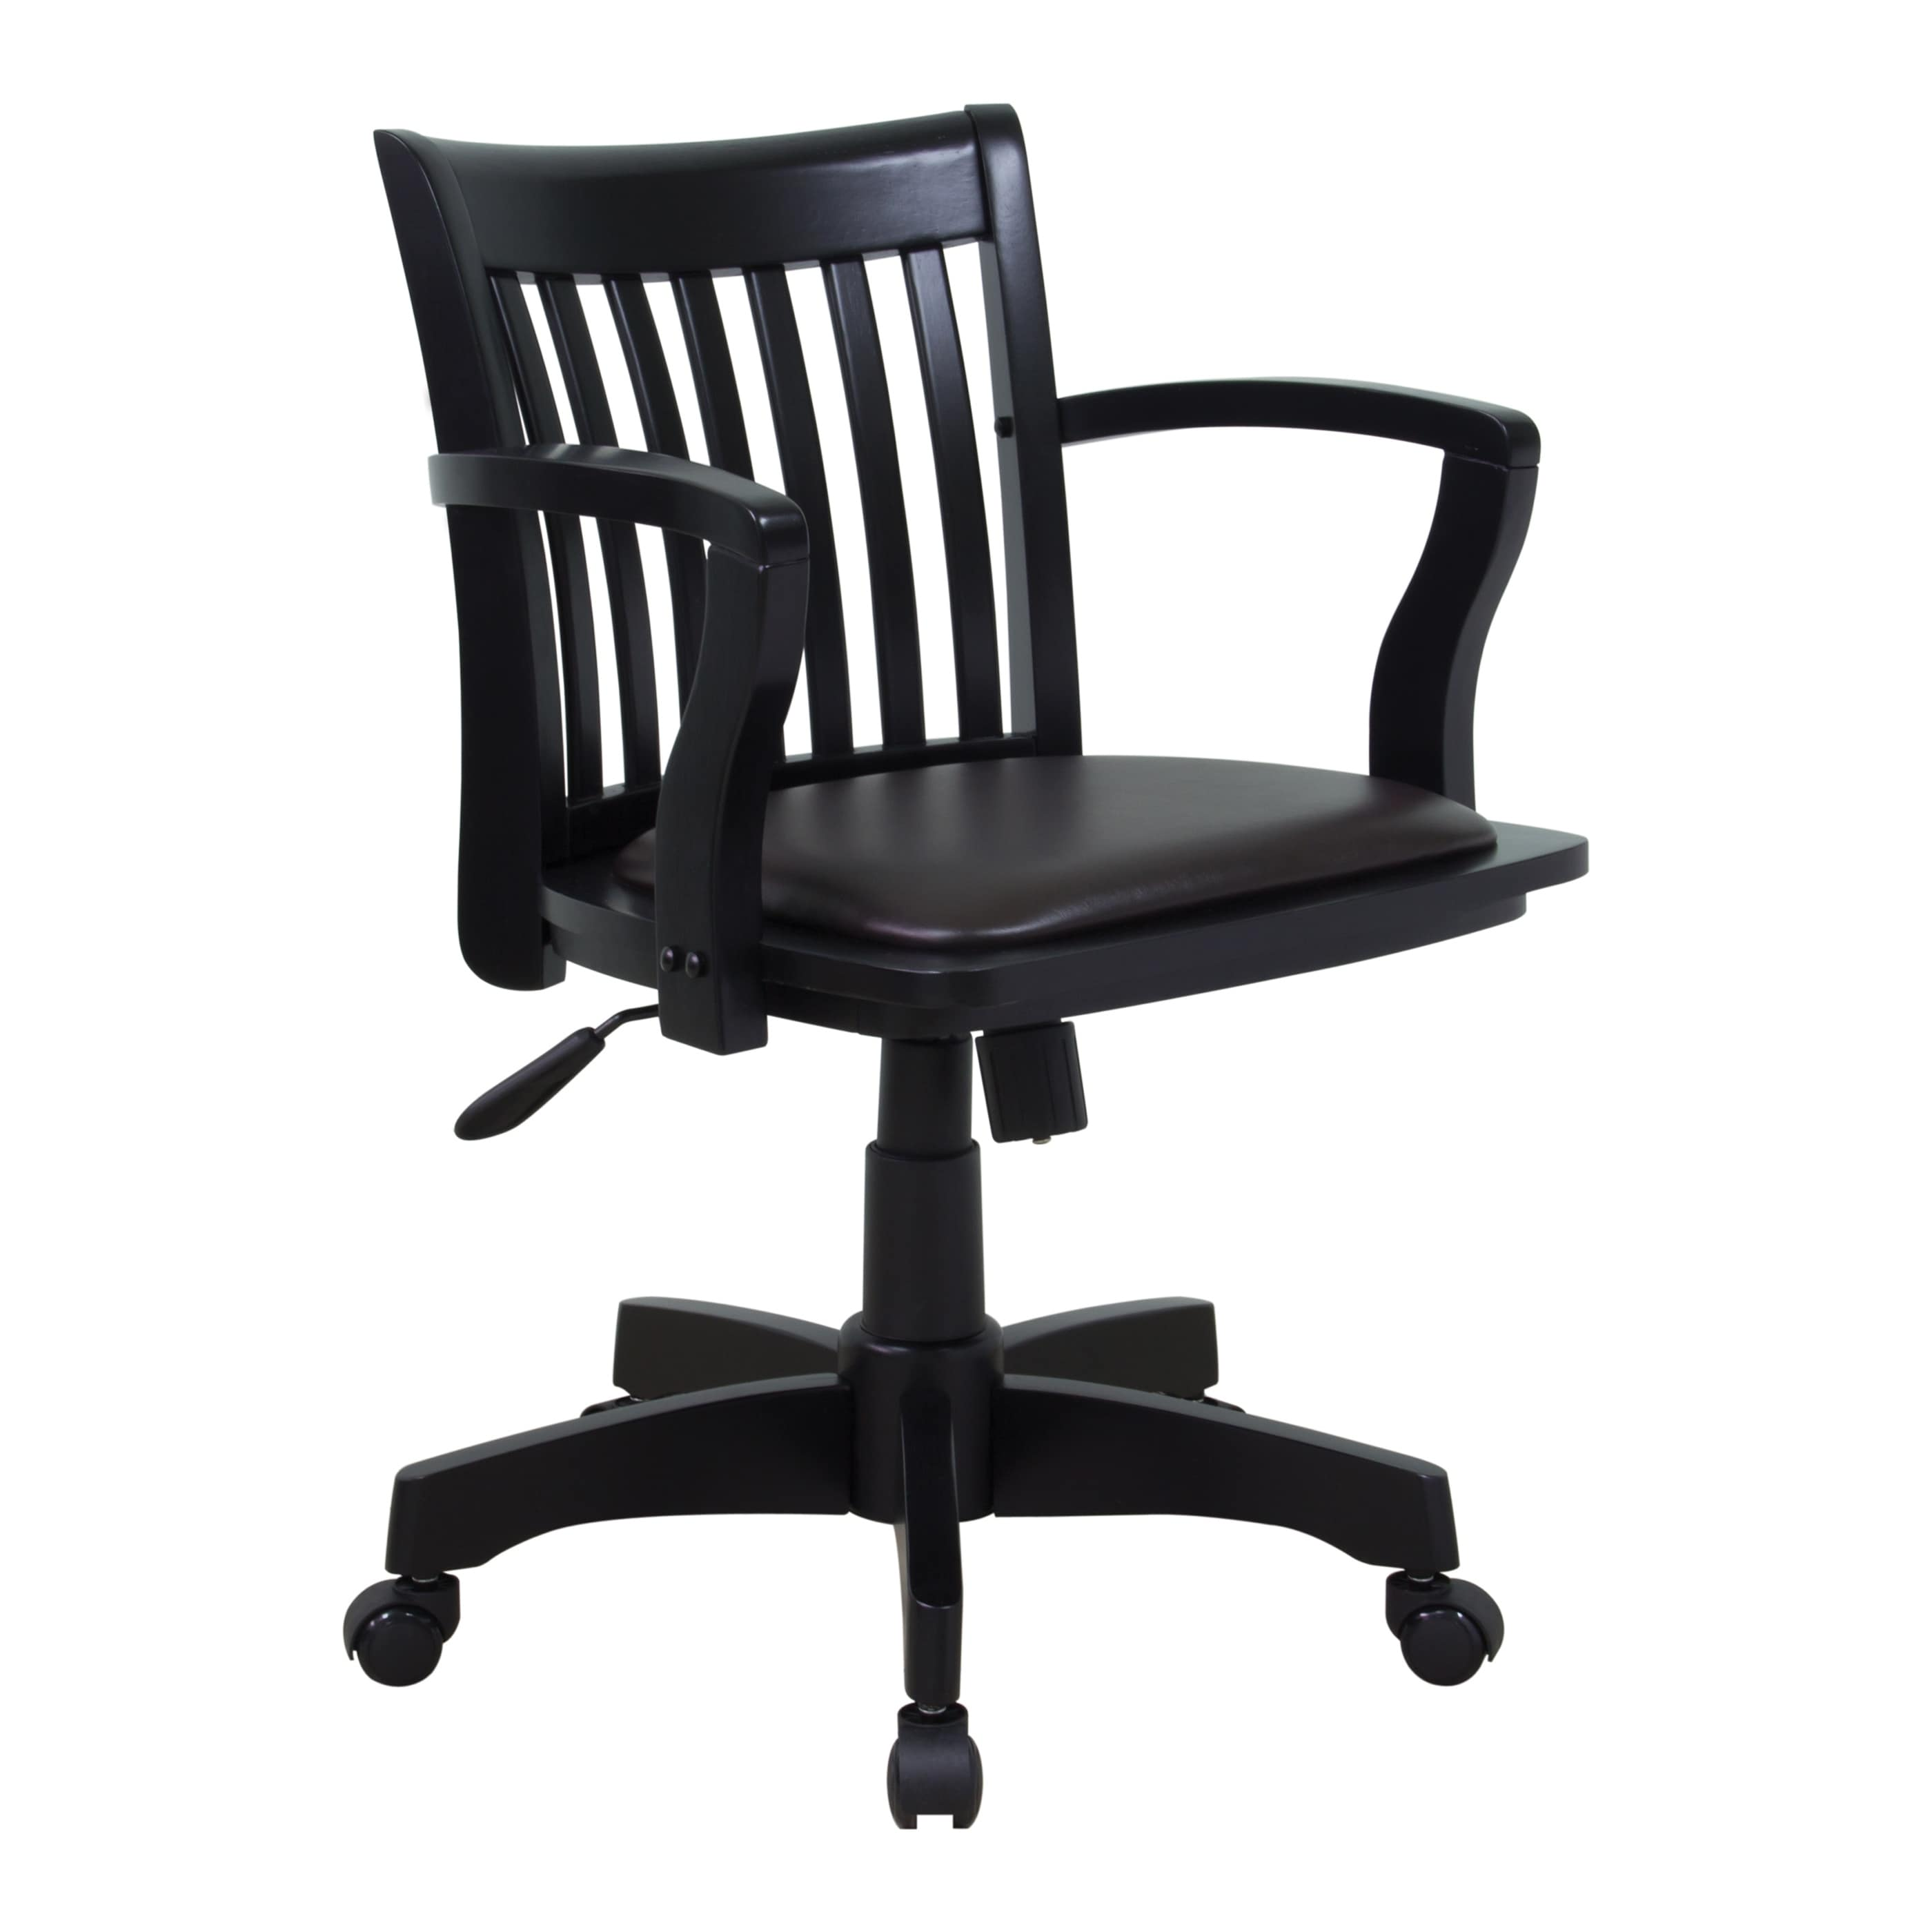 Osp home furnishings deluxe wood bankers chair with vinyl padded espresso seat and black frame